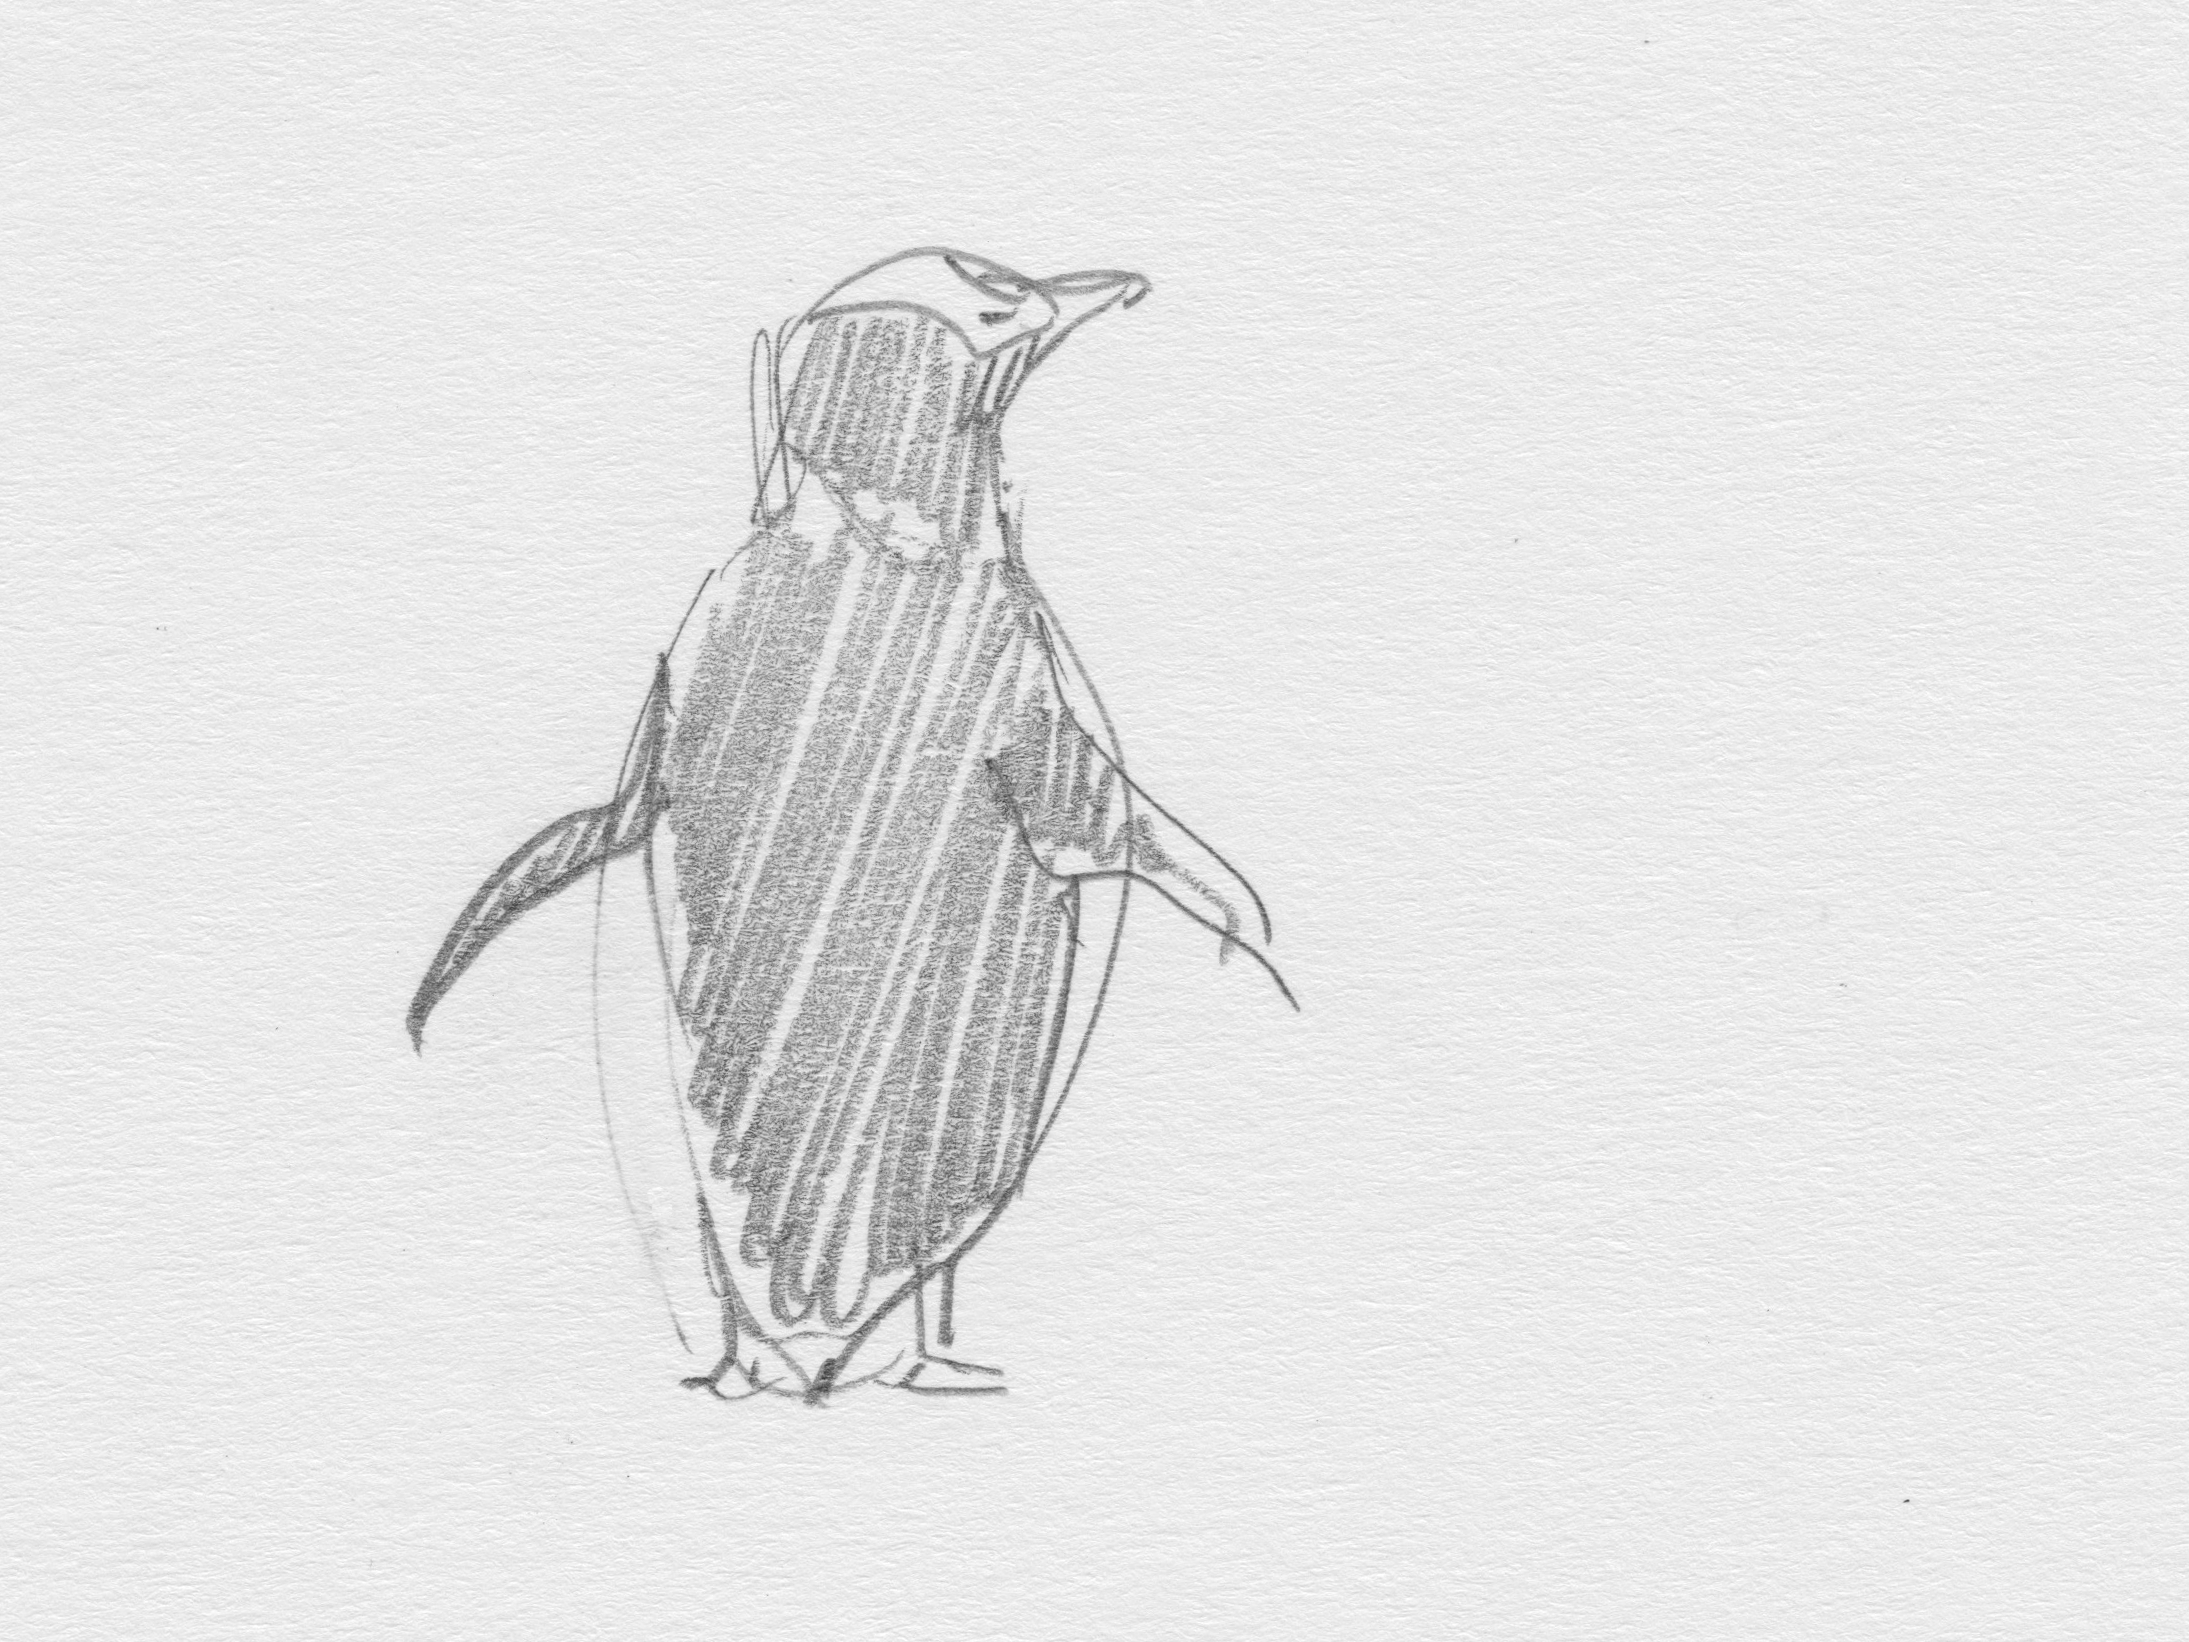 Sketches from Seabirdland - Open Explorer